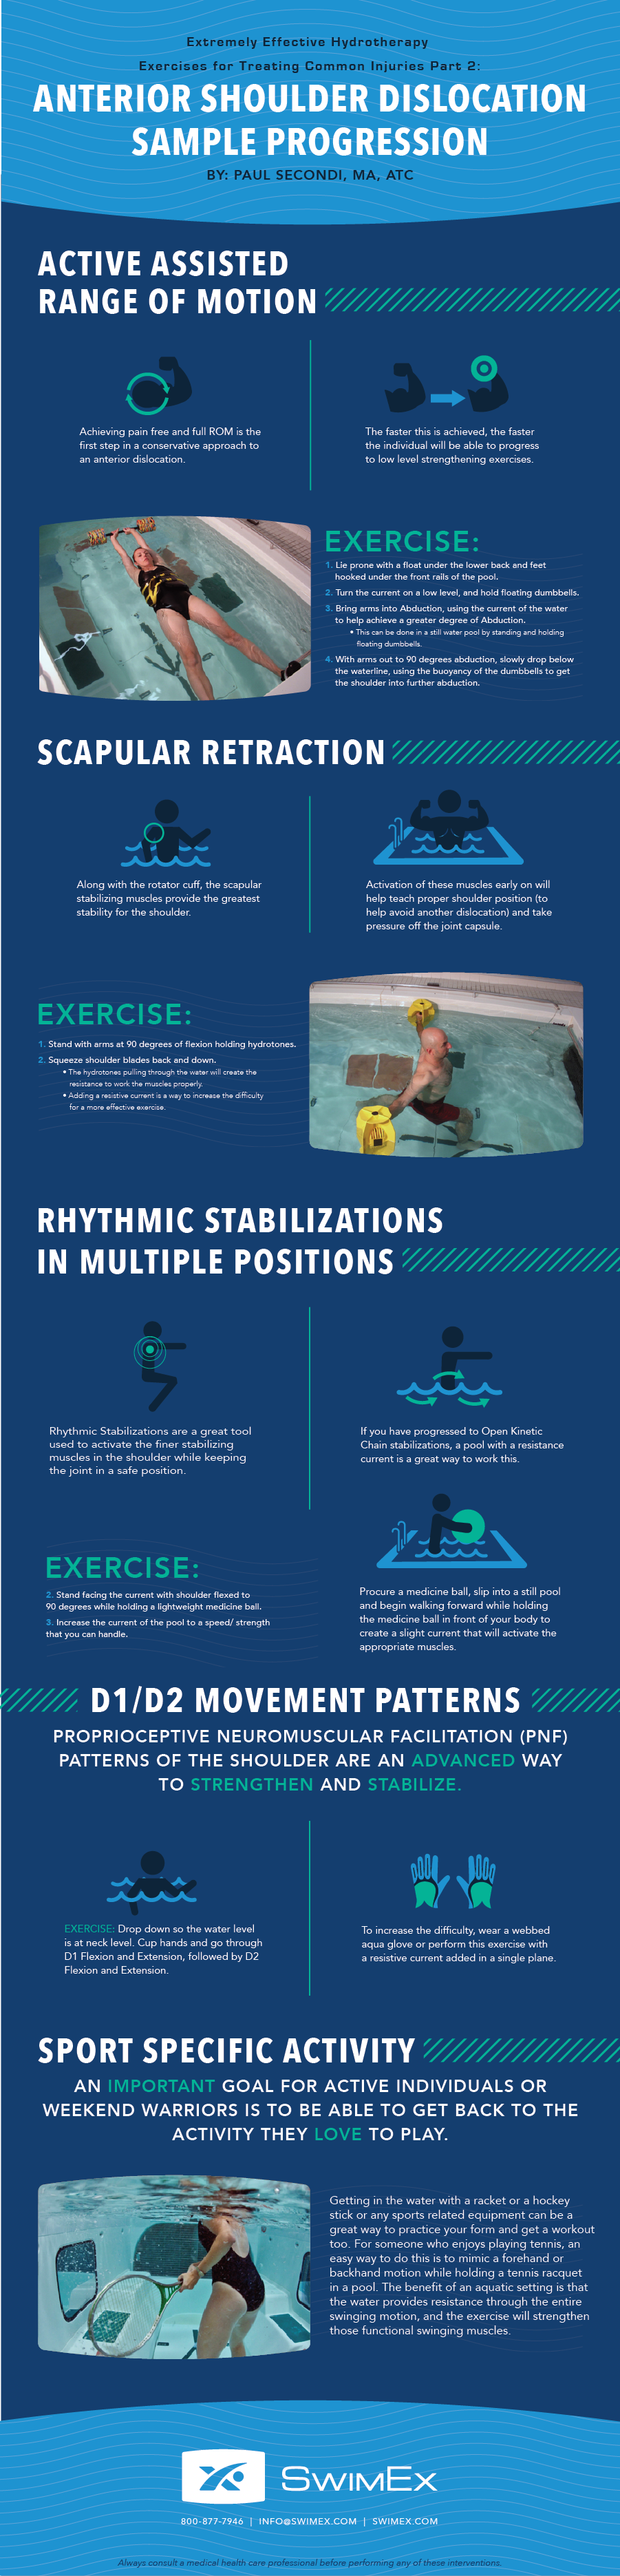 Hydrotherapy Exercises for Treating Anterior Shoulder Dislocation